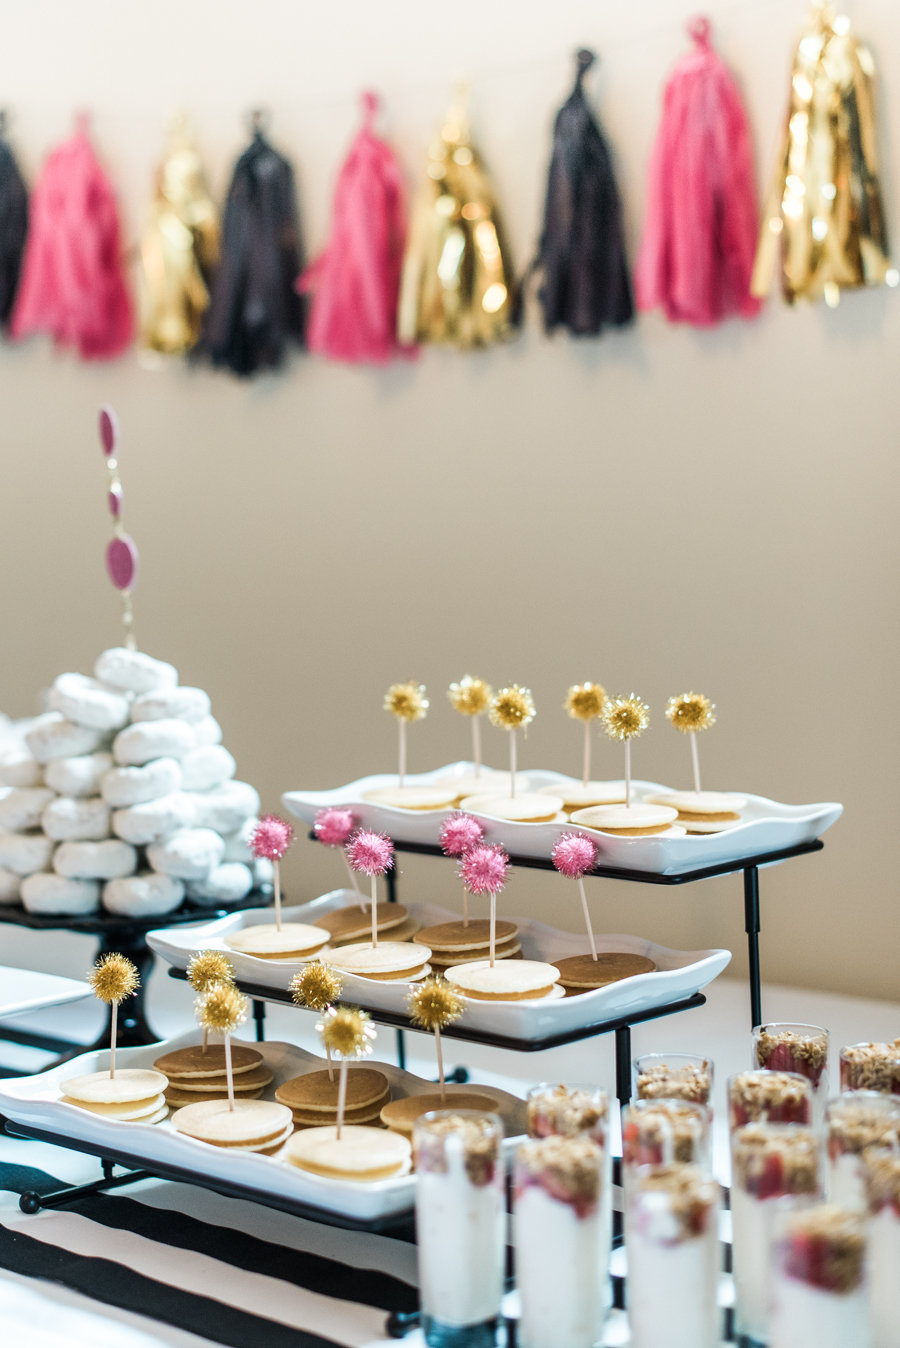 Kate Spade Inspired Bridal Shower - TrueBlu | Bridesmaid ...